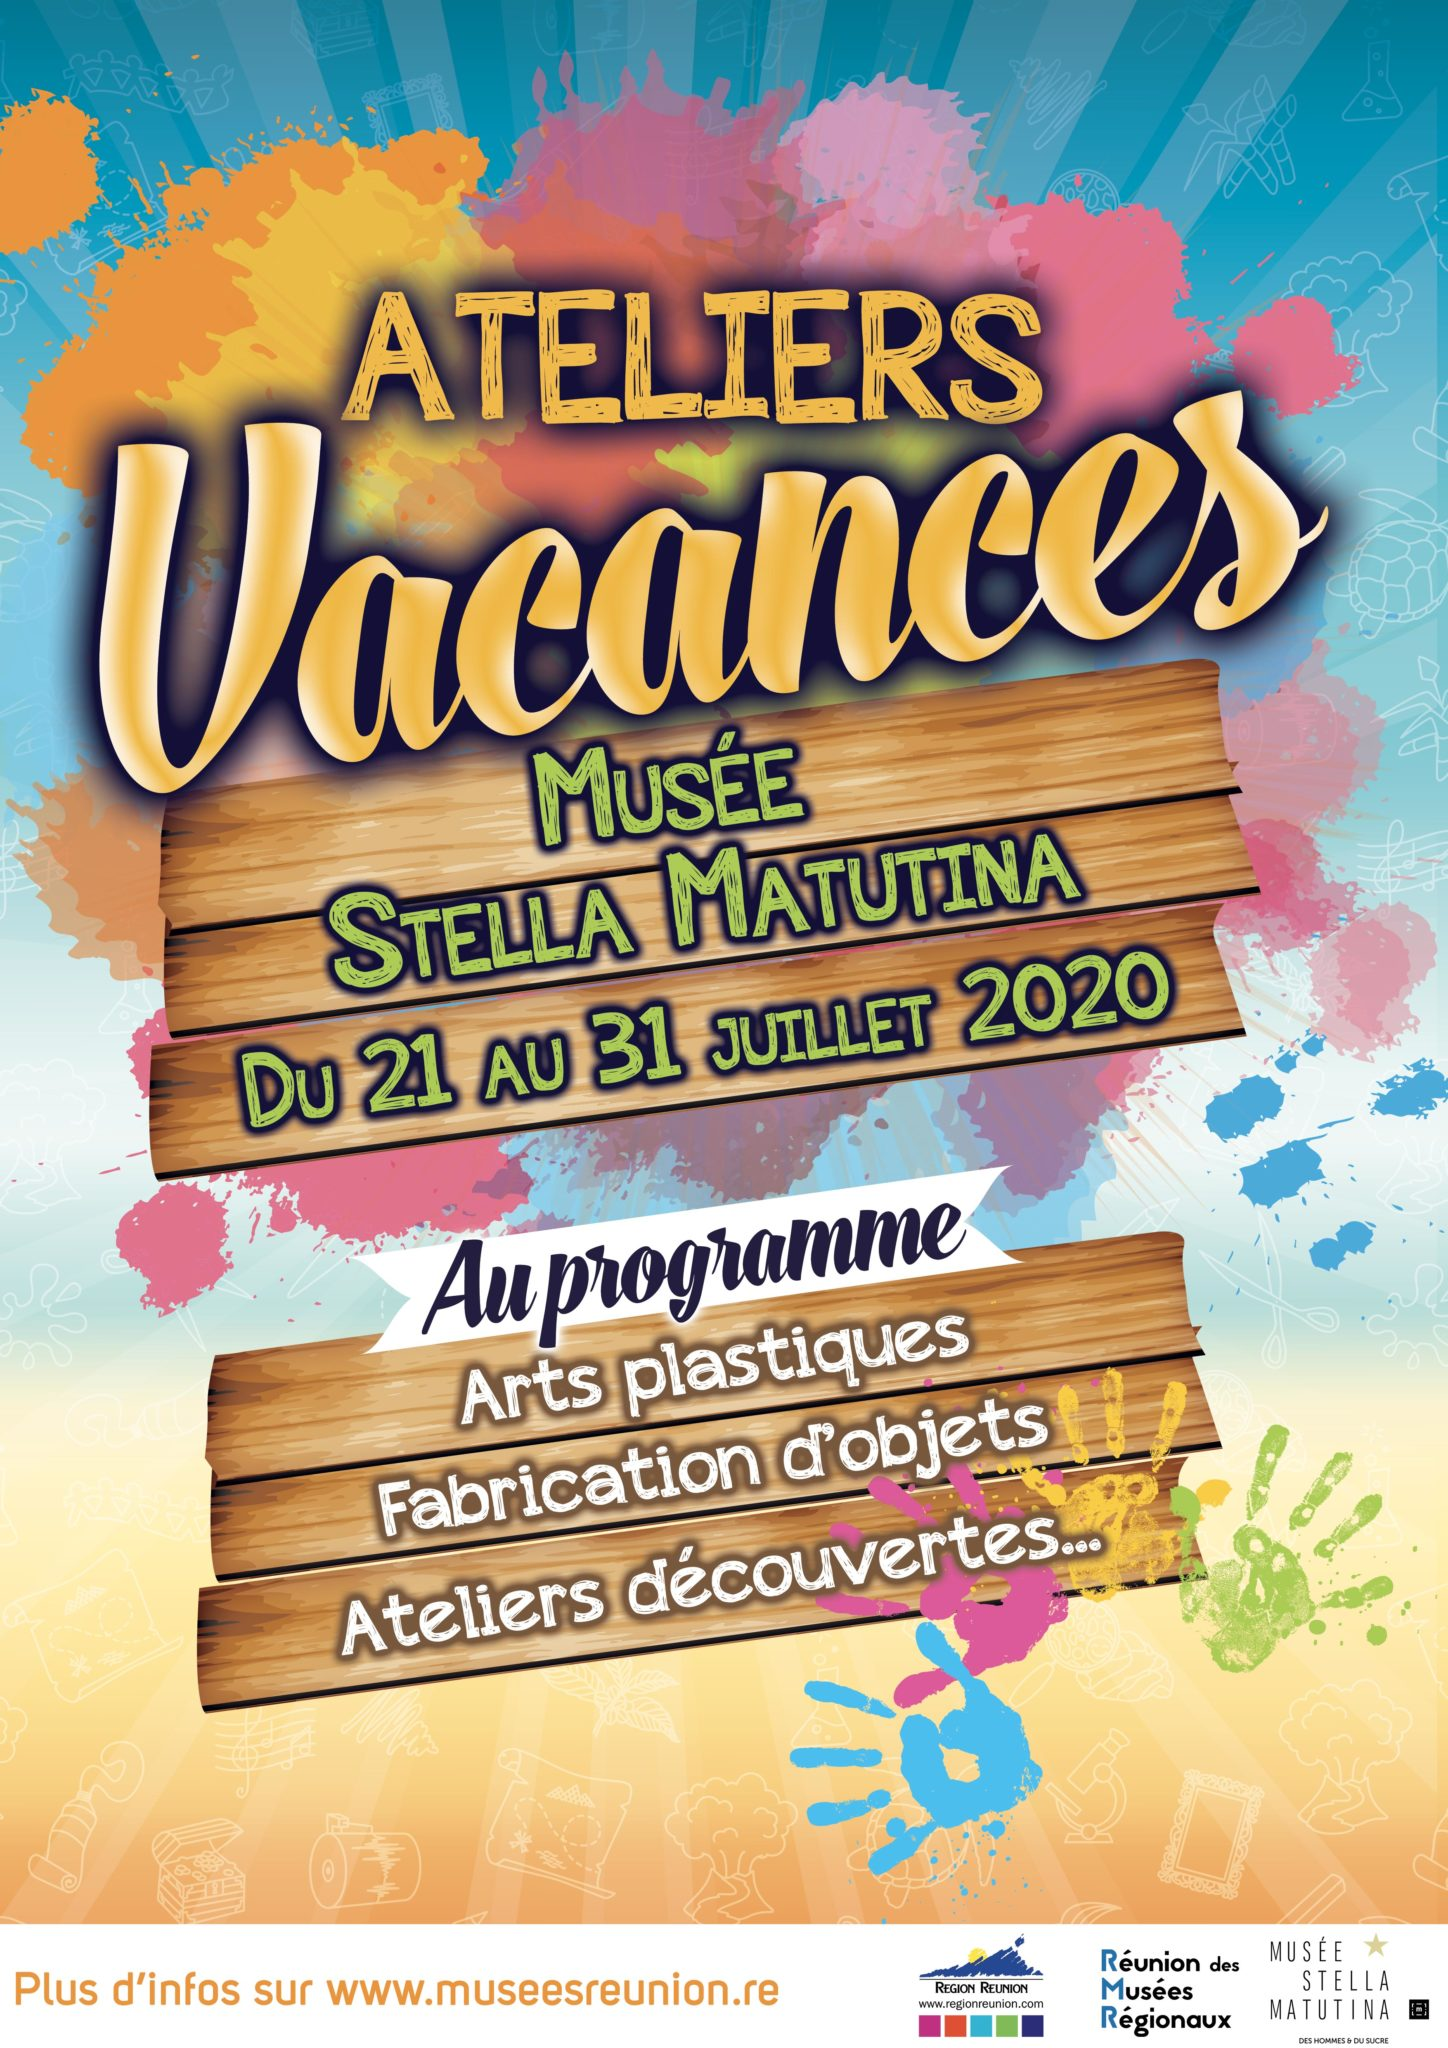 <br /> <b>Notice</b>:  Undefined variable: meta_motscles in <b>/home/ouestlar/www/agenda-fiche.php</b> on line <b>127</b><br />